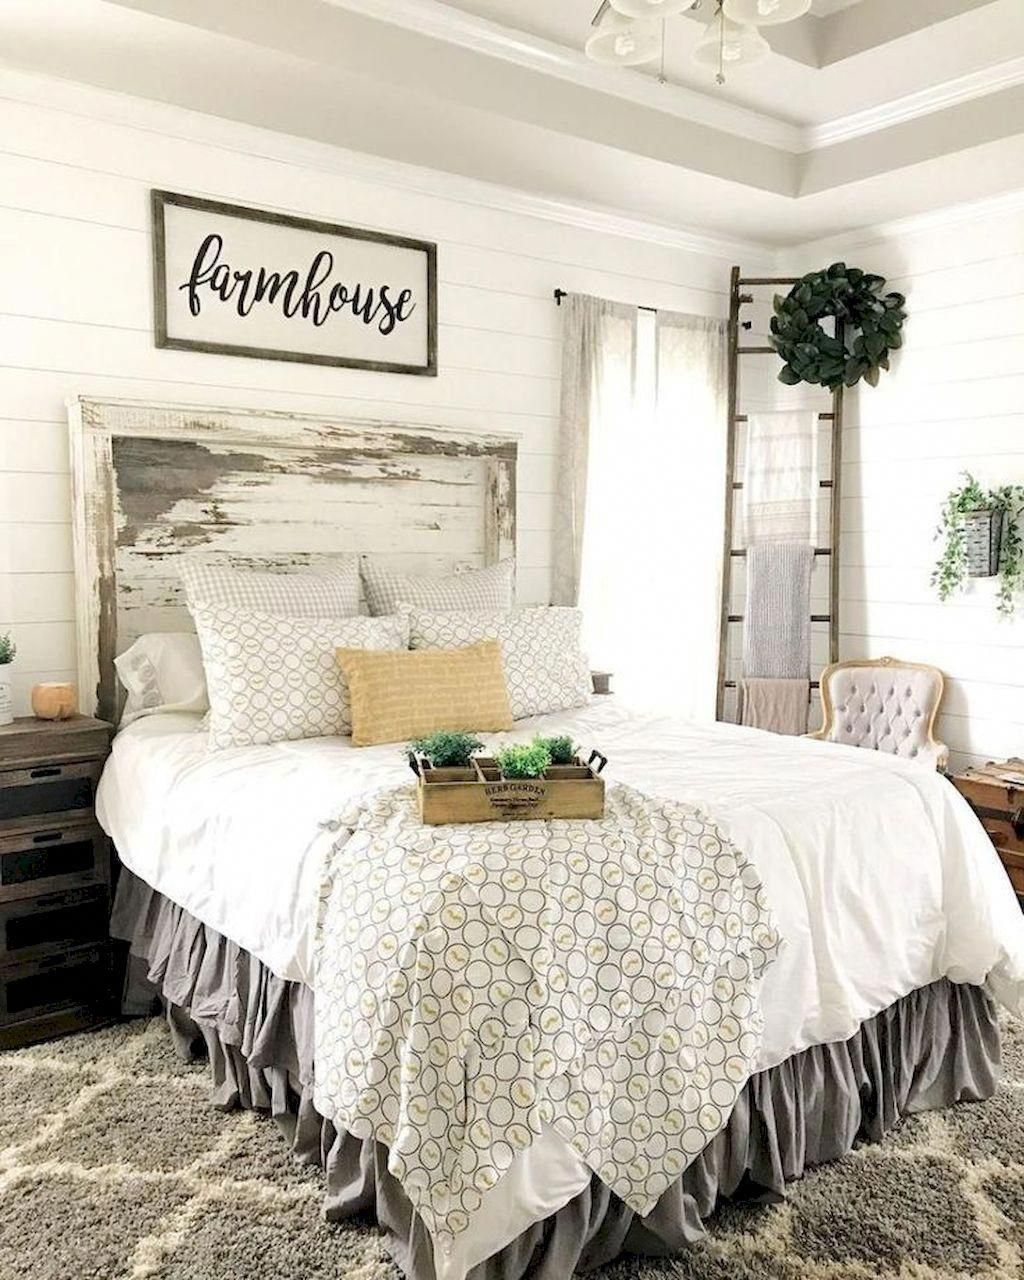 Landhausstil Schlafzimmer Pin Von Kara S Diy Home Decor Auf Bedroom Ideas Ooh La La Decor In